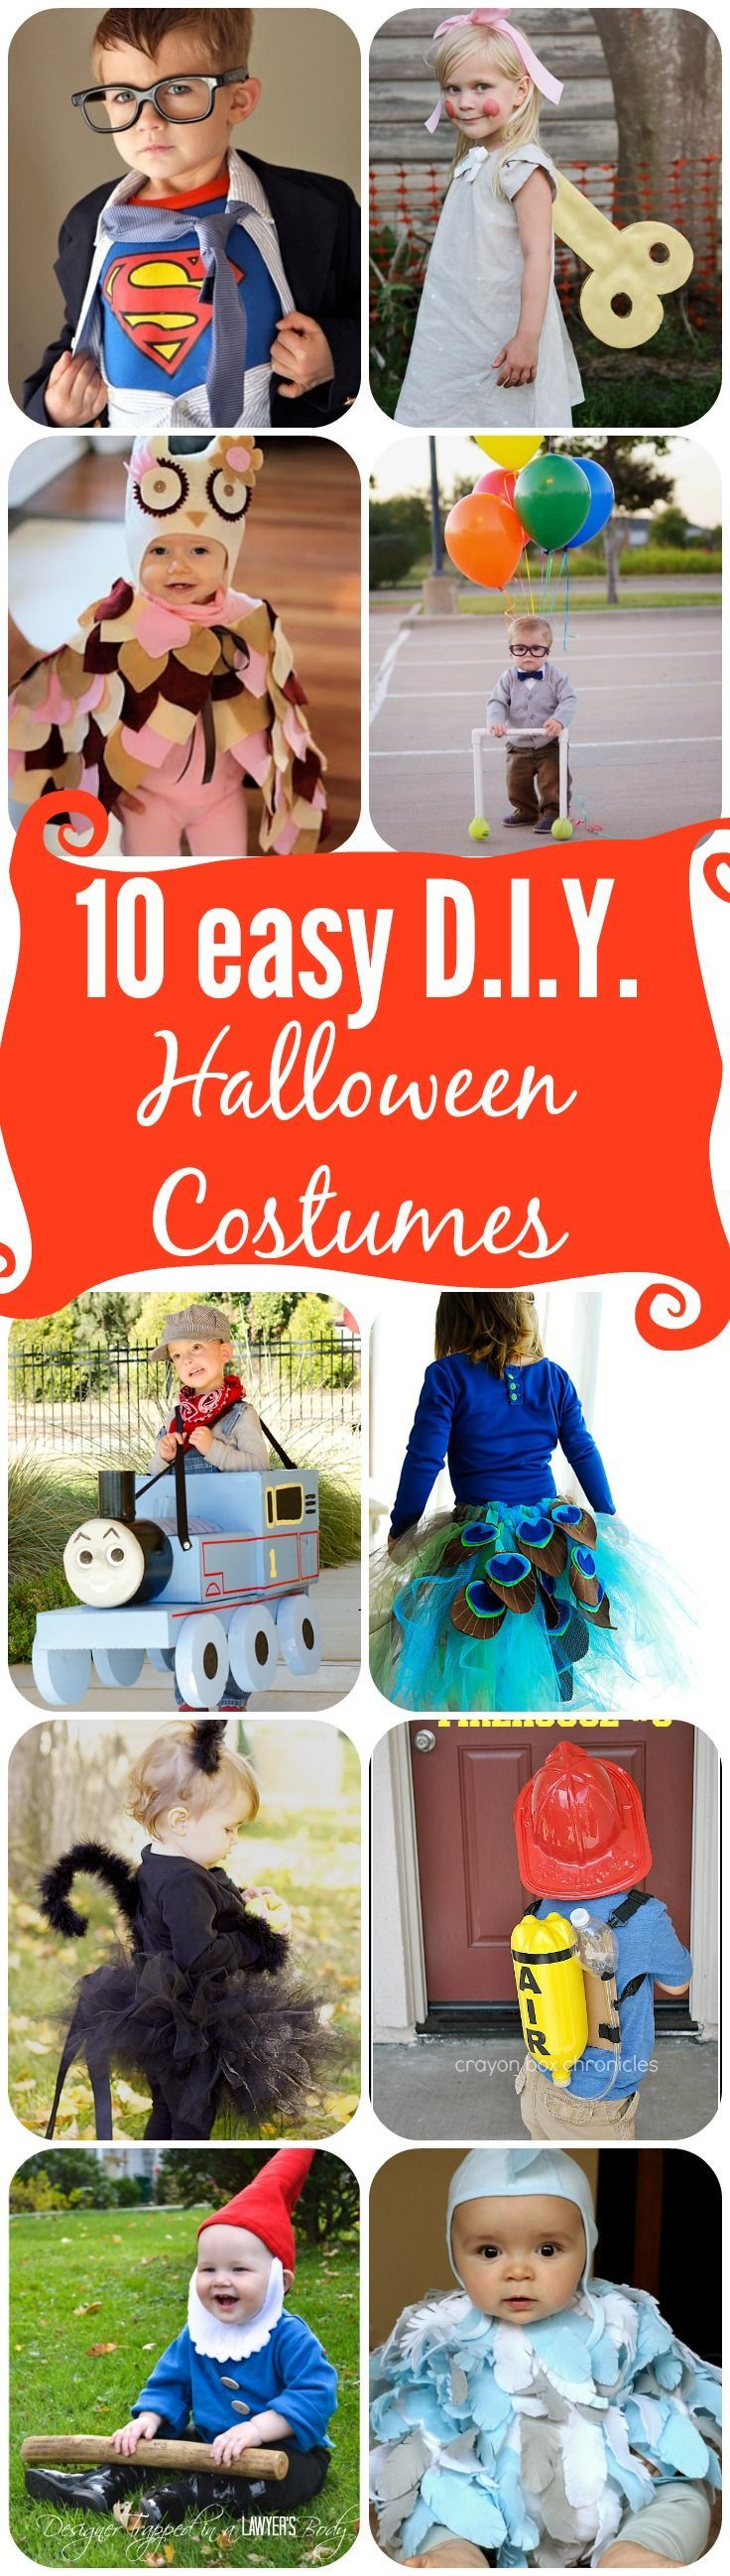 763 best Halloween Costume Ideas at Goodwill images on Pinterest